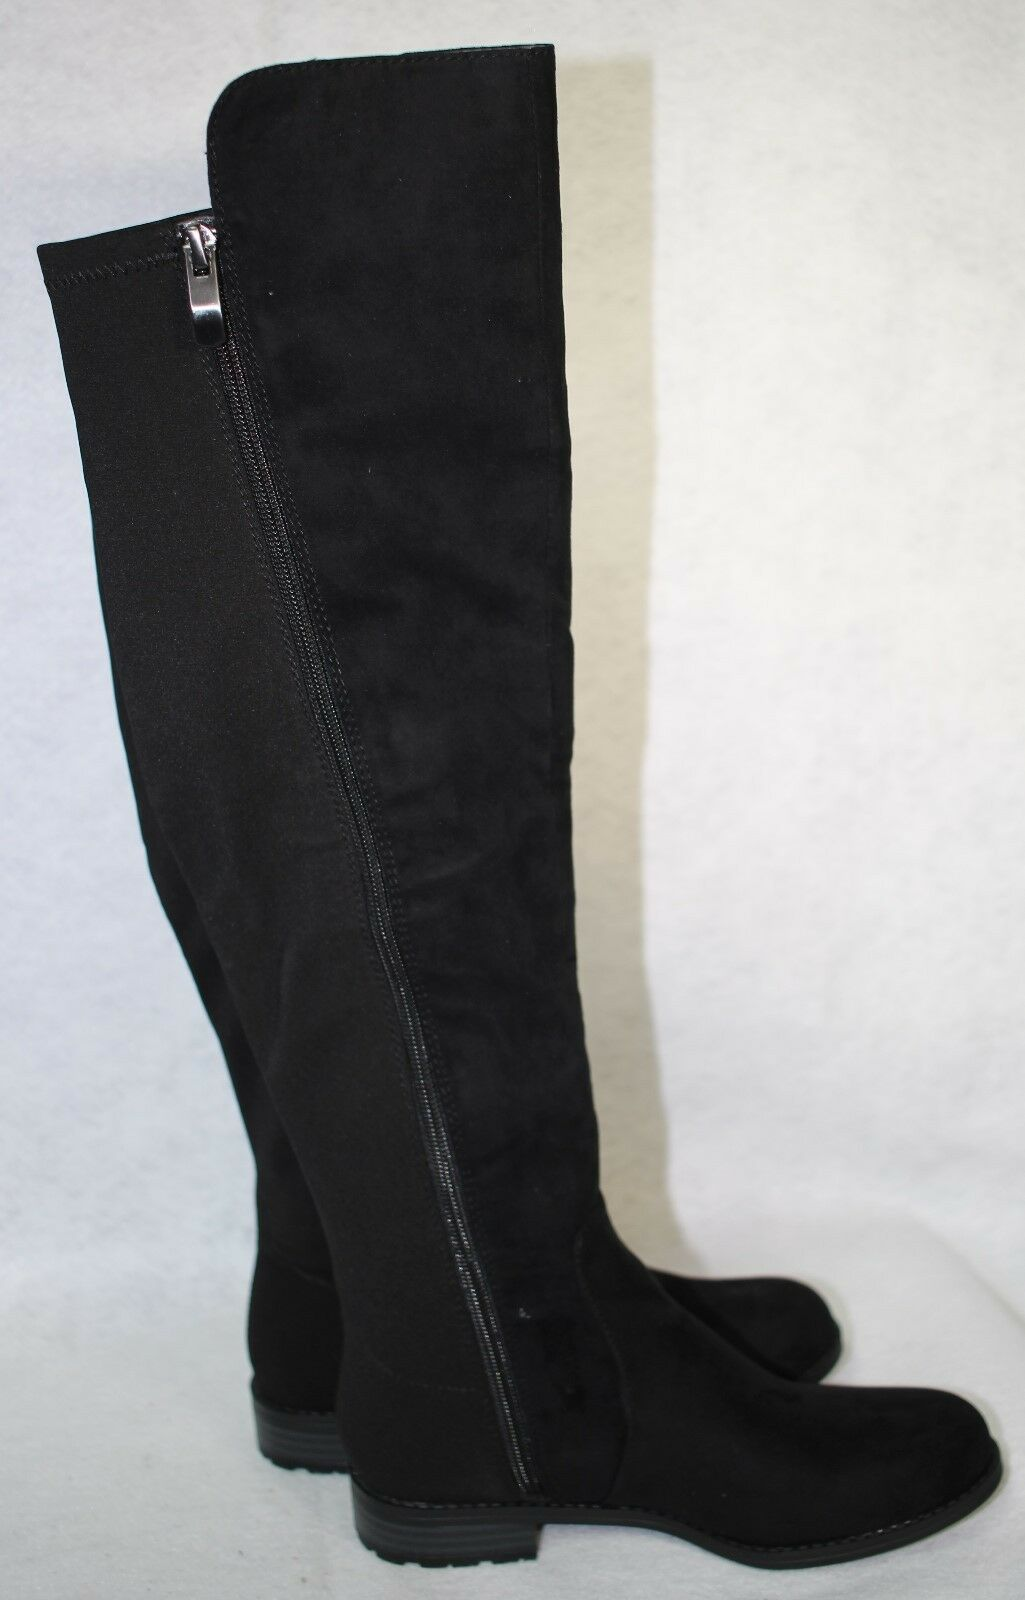 Liz Claiborne Claiborne Claiborne Paige Black Womens Knee High Fashion Boot US shoes Size 5 M 07f46c